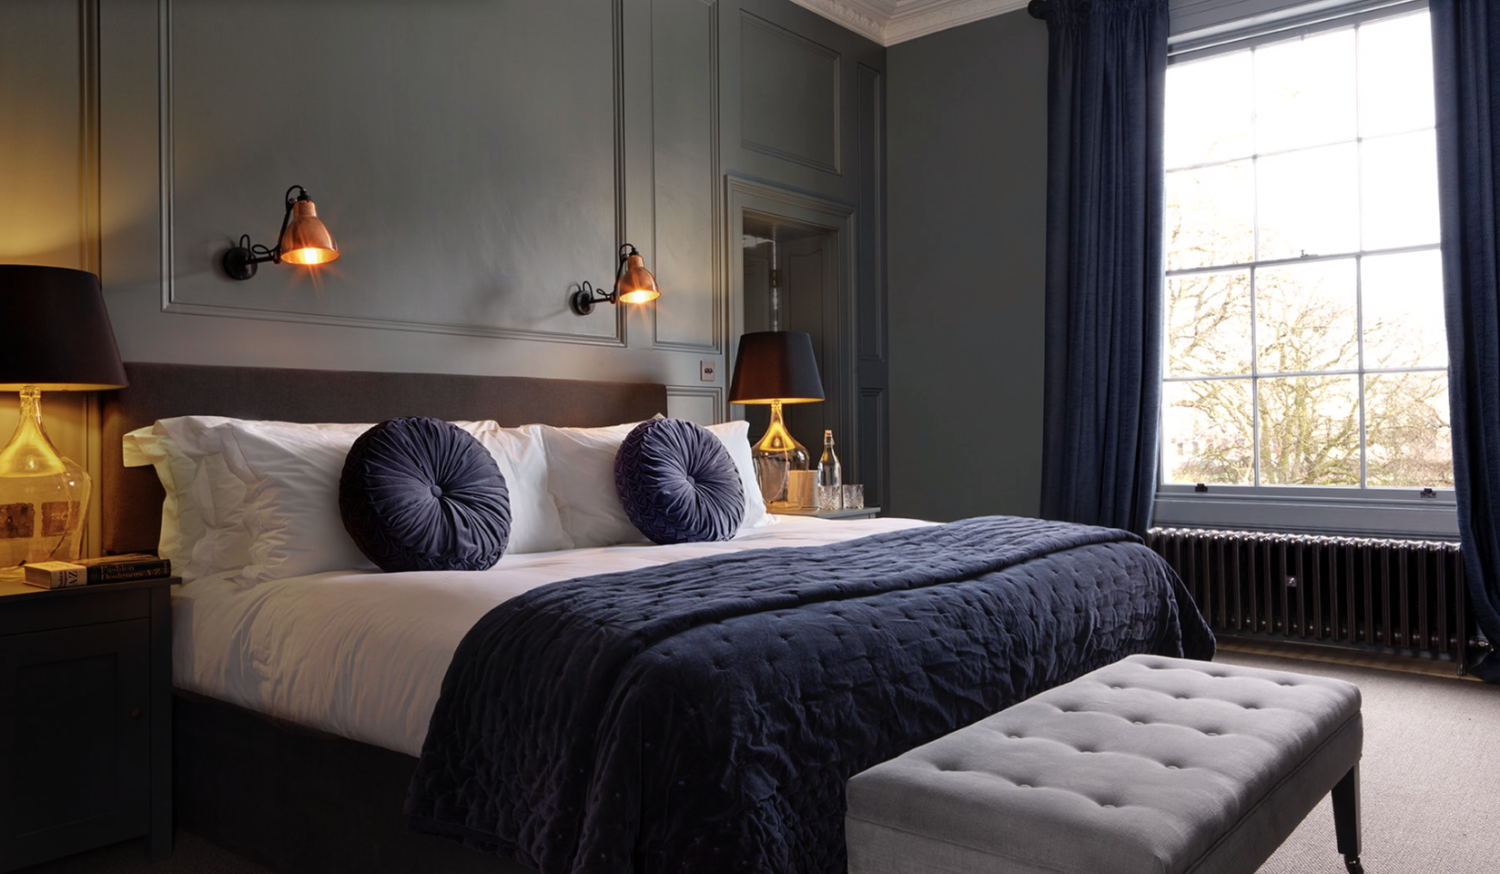 No131 Hotel and Restaurant in the heart of Cheltenham, The Cotswolds